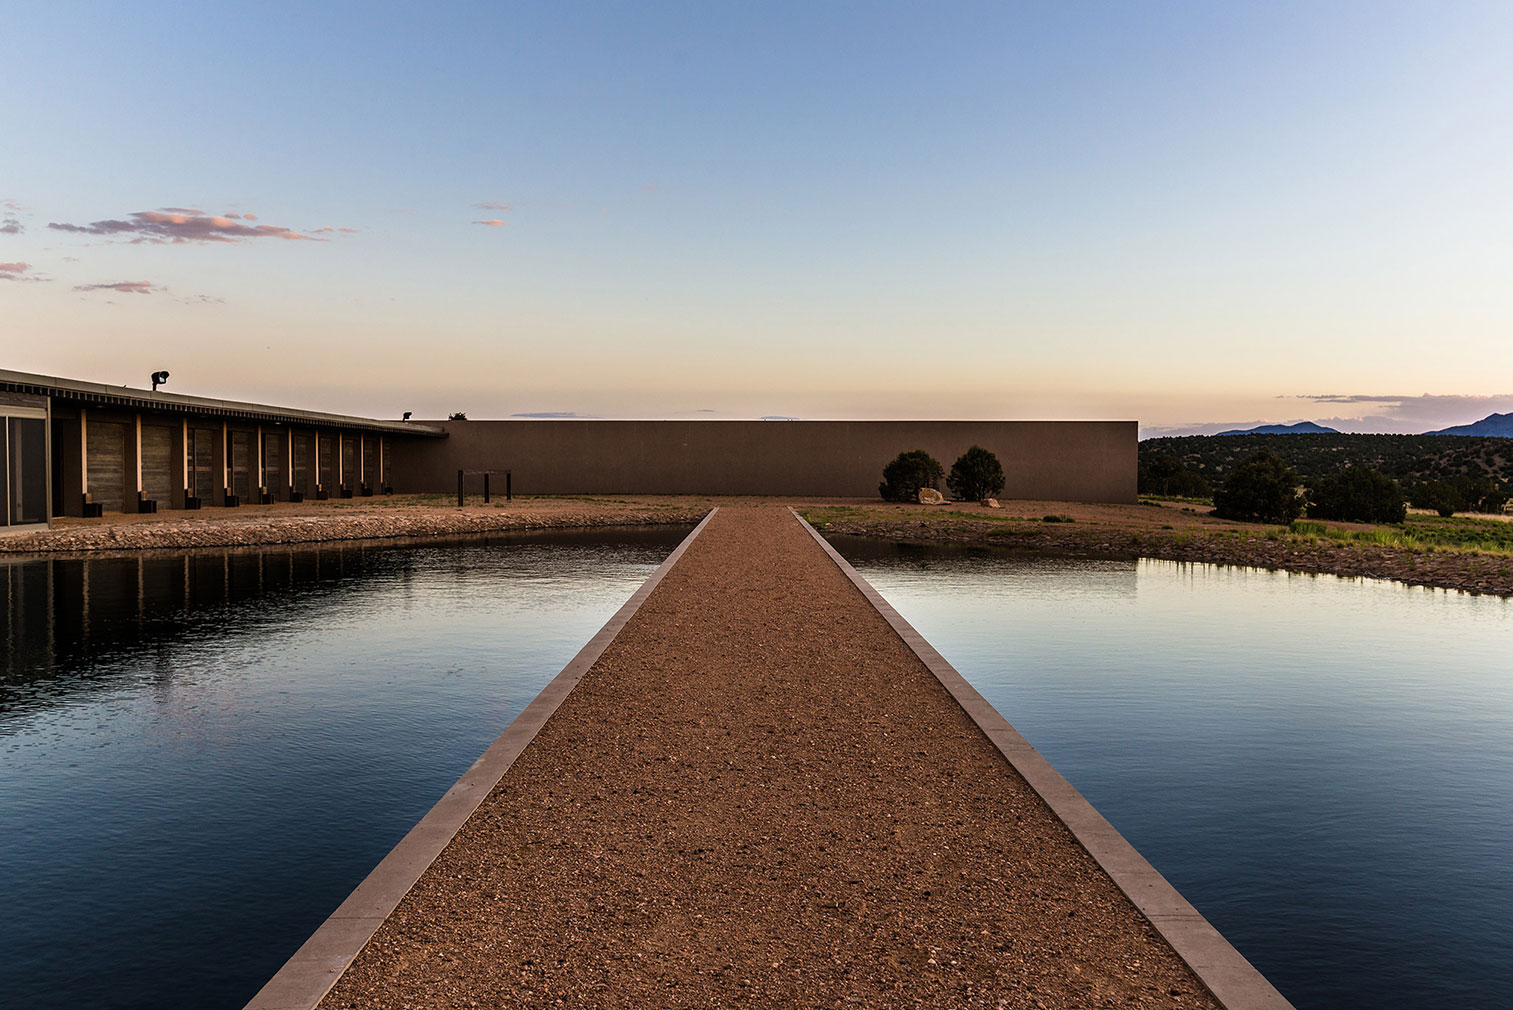 Tom Ford's ranch, designed by Tadao Ando